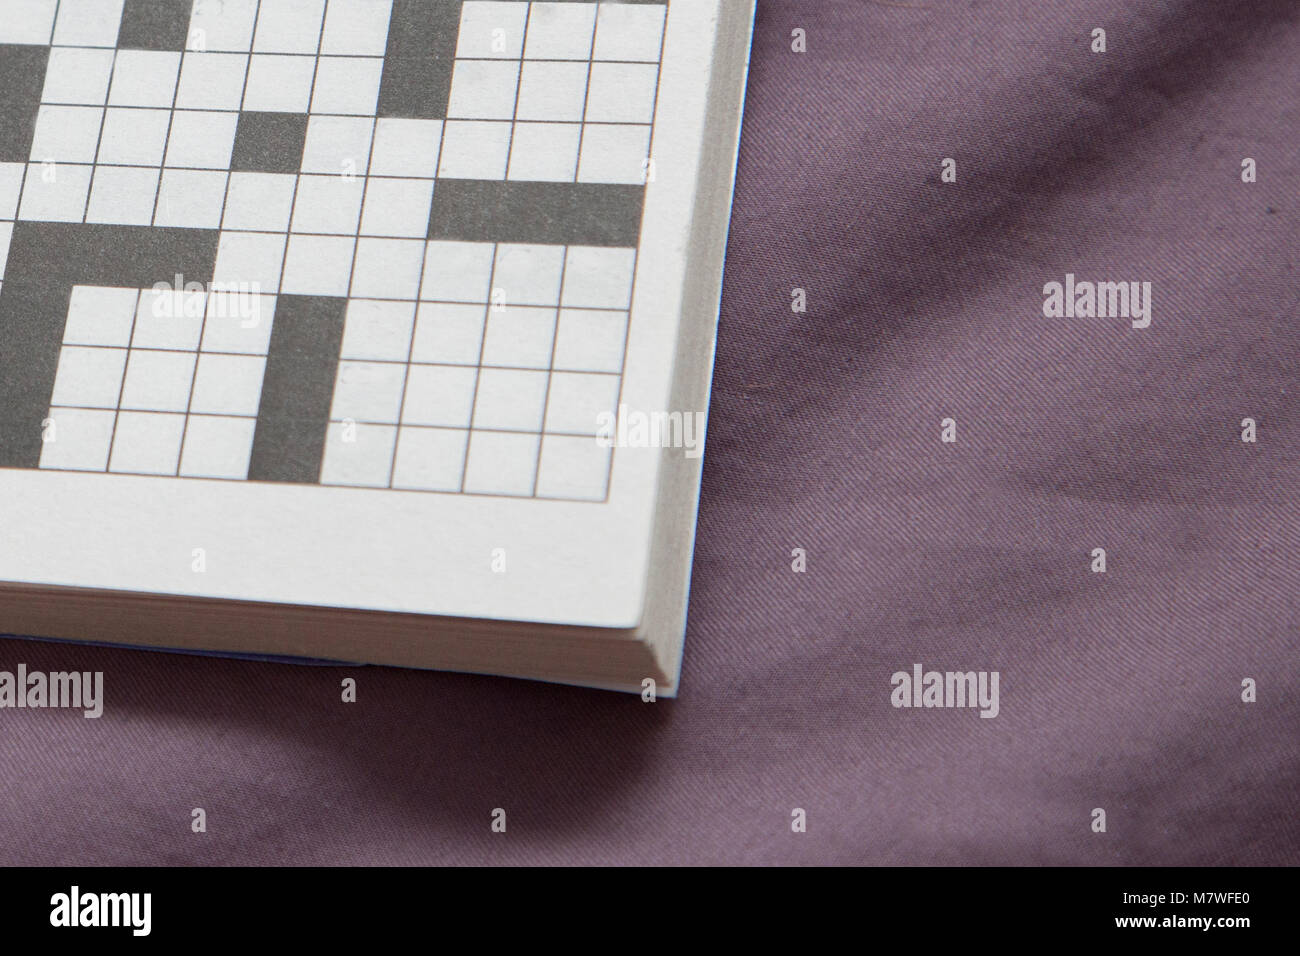 a crossword puzzle with empty spaces on a purple copy space - Stock Image